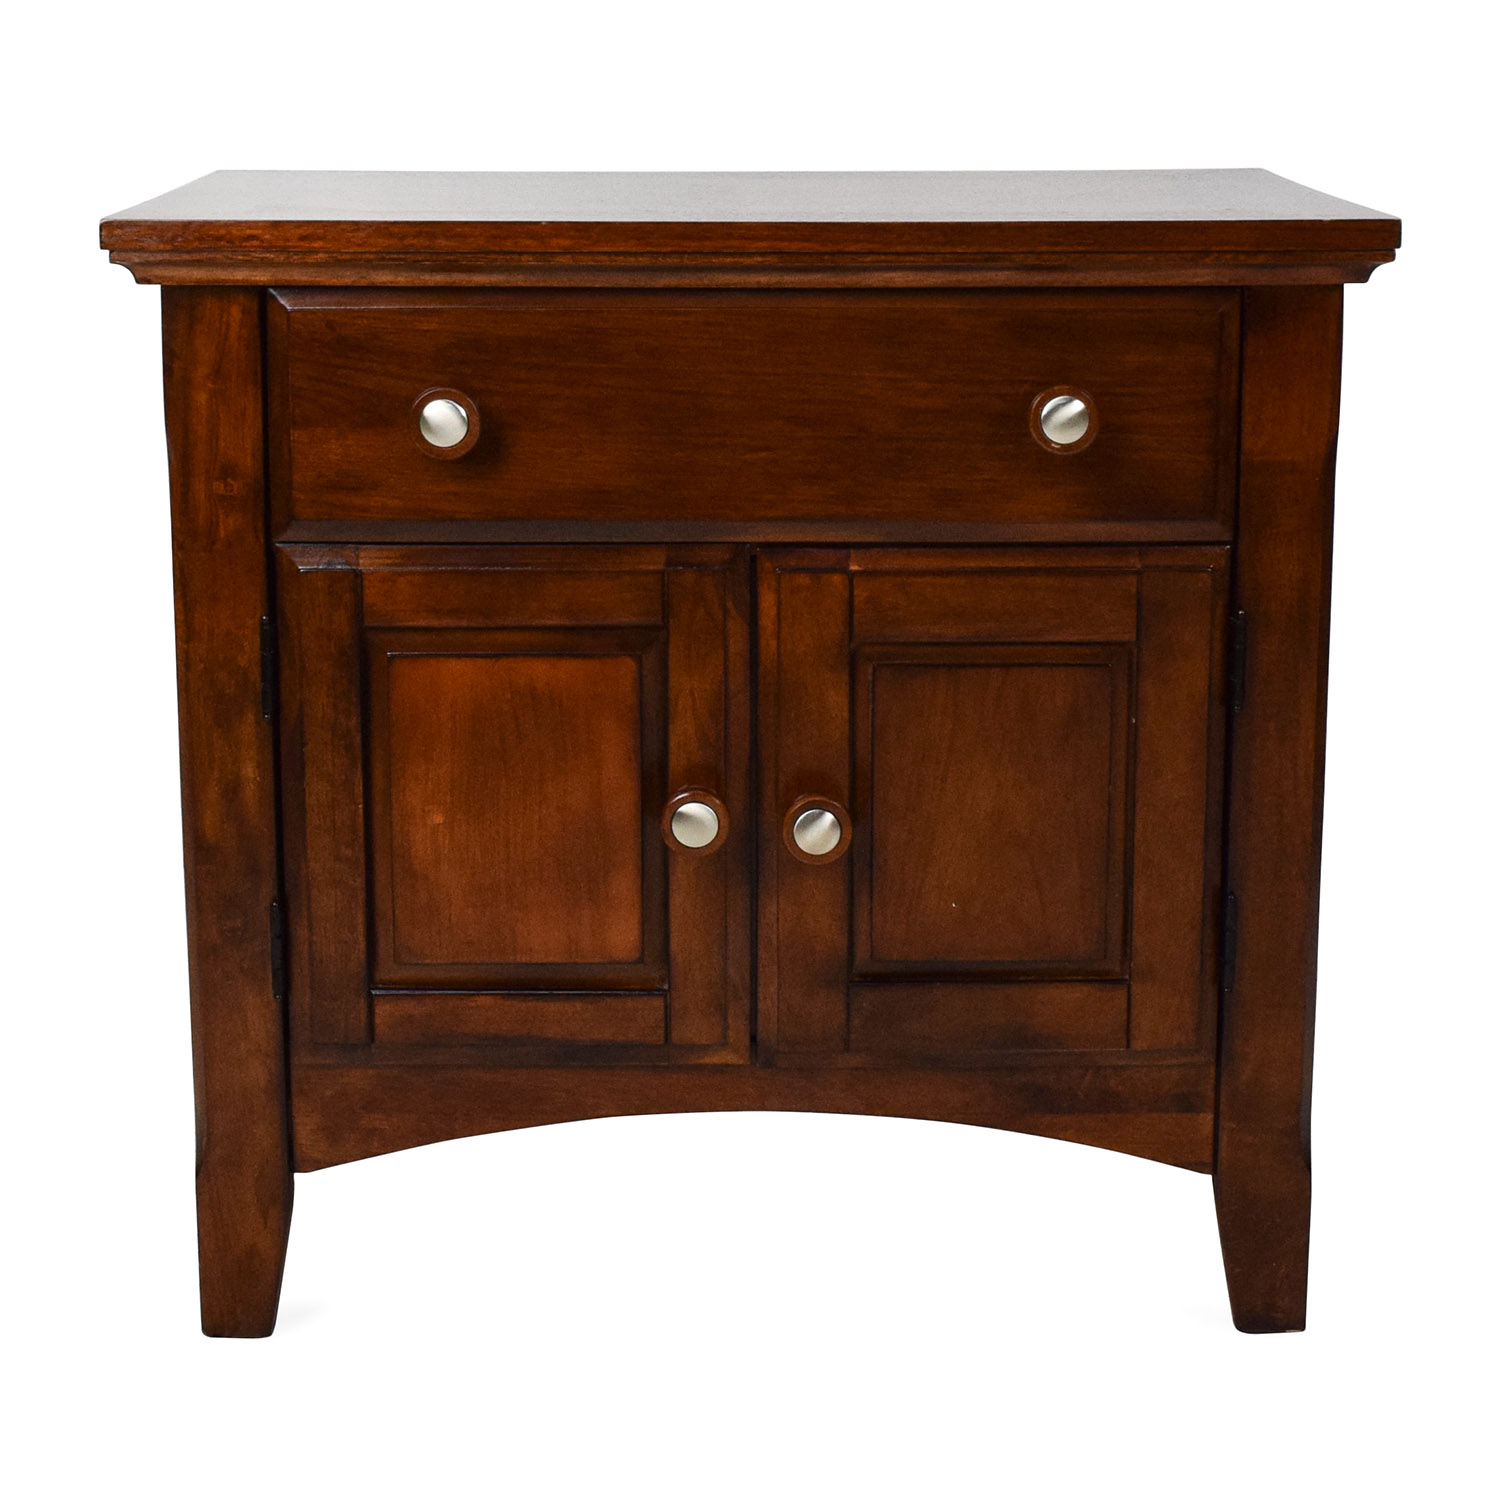 Walter of Wabash Walter of Wabash Bedside Table used